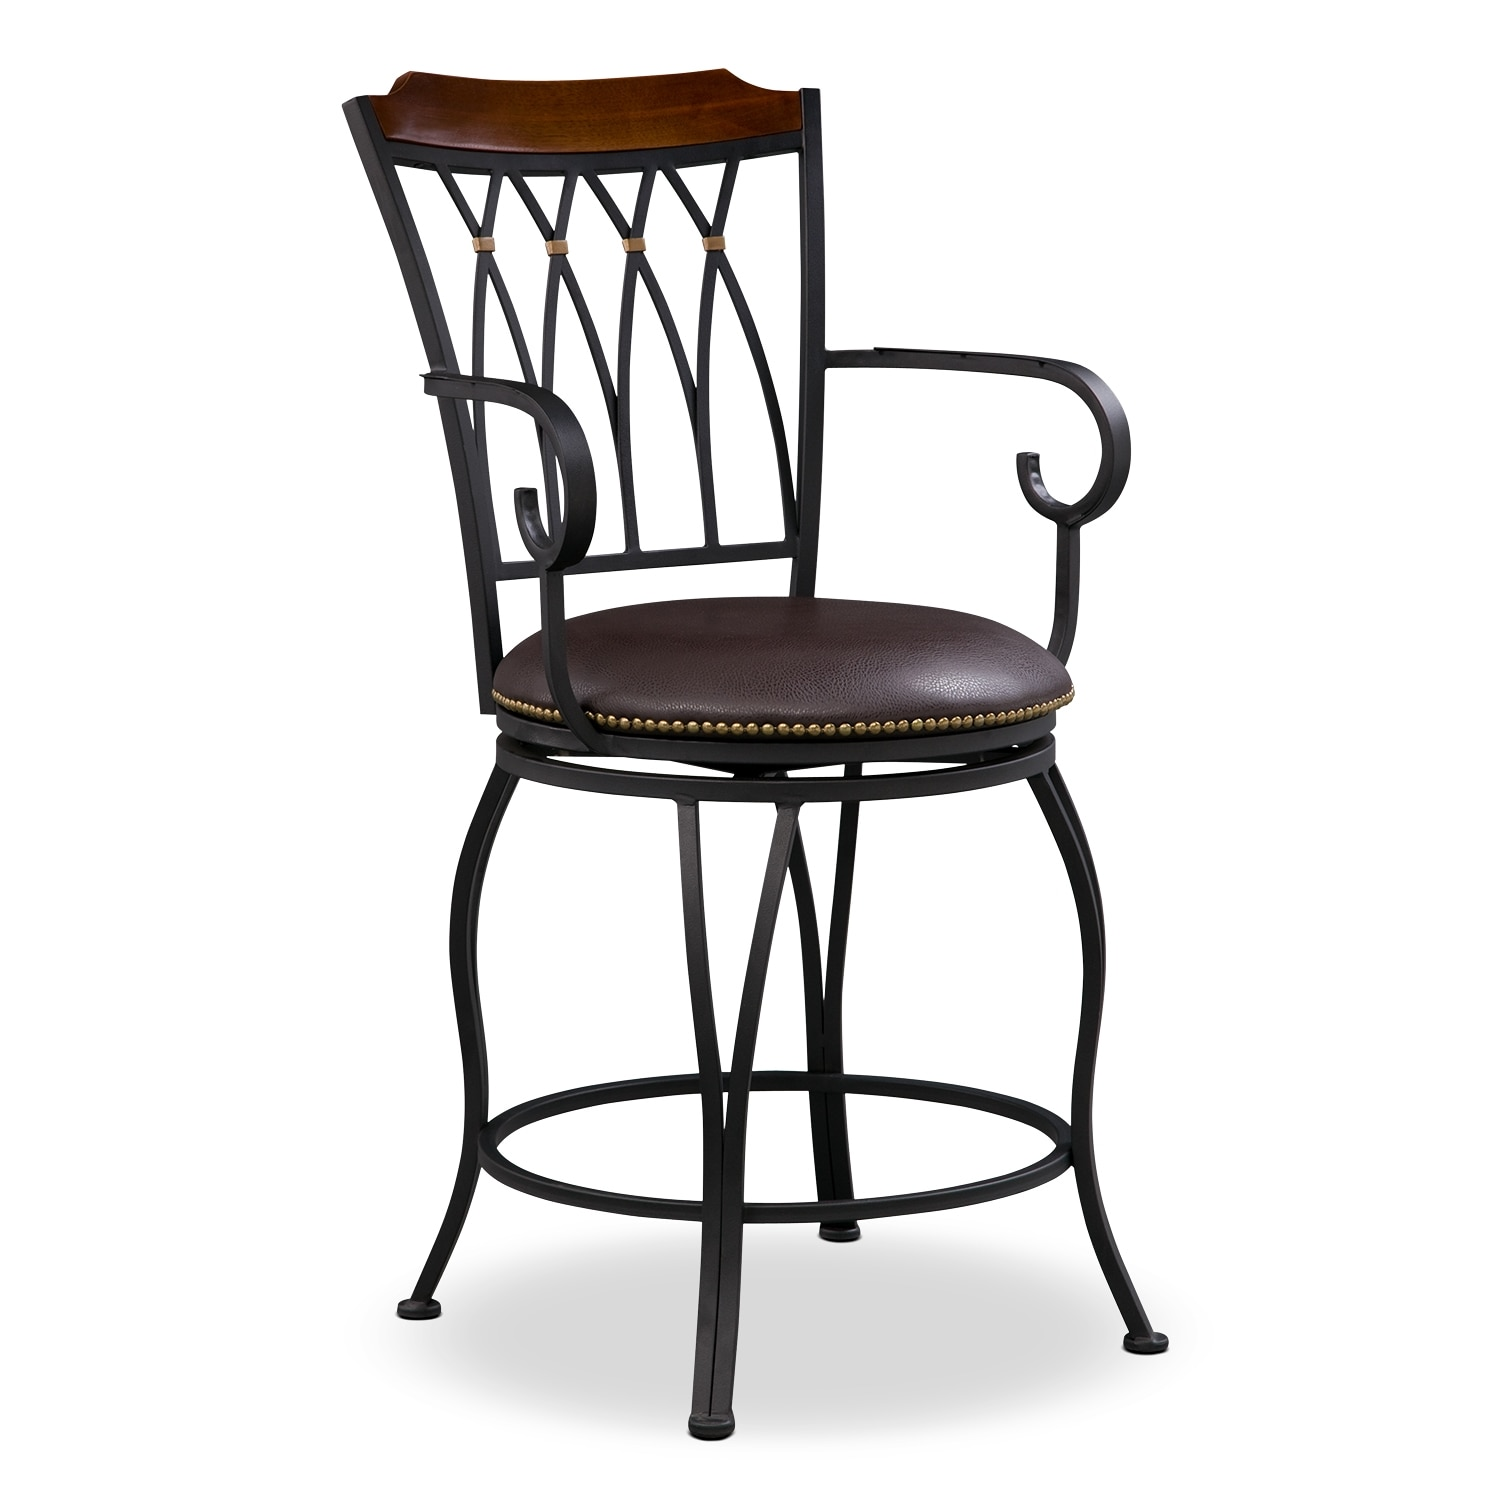 Furniture Caunter : Dining Room Furniture - Winfield Counter-Height Stool